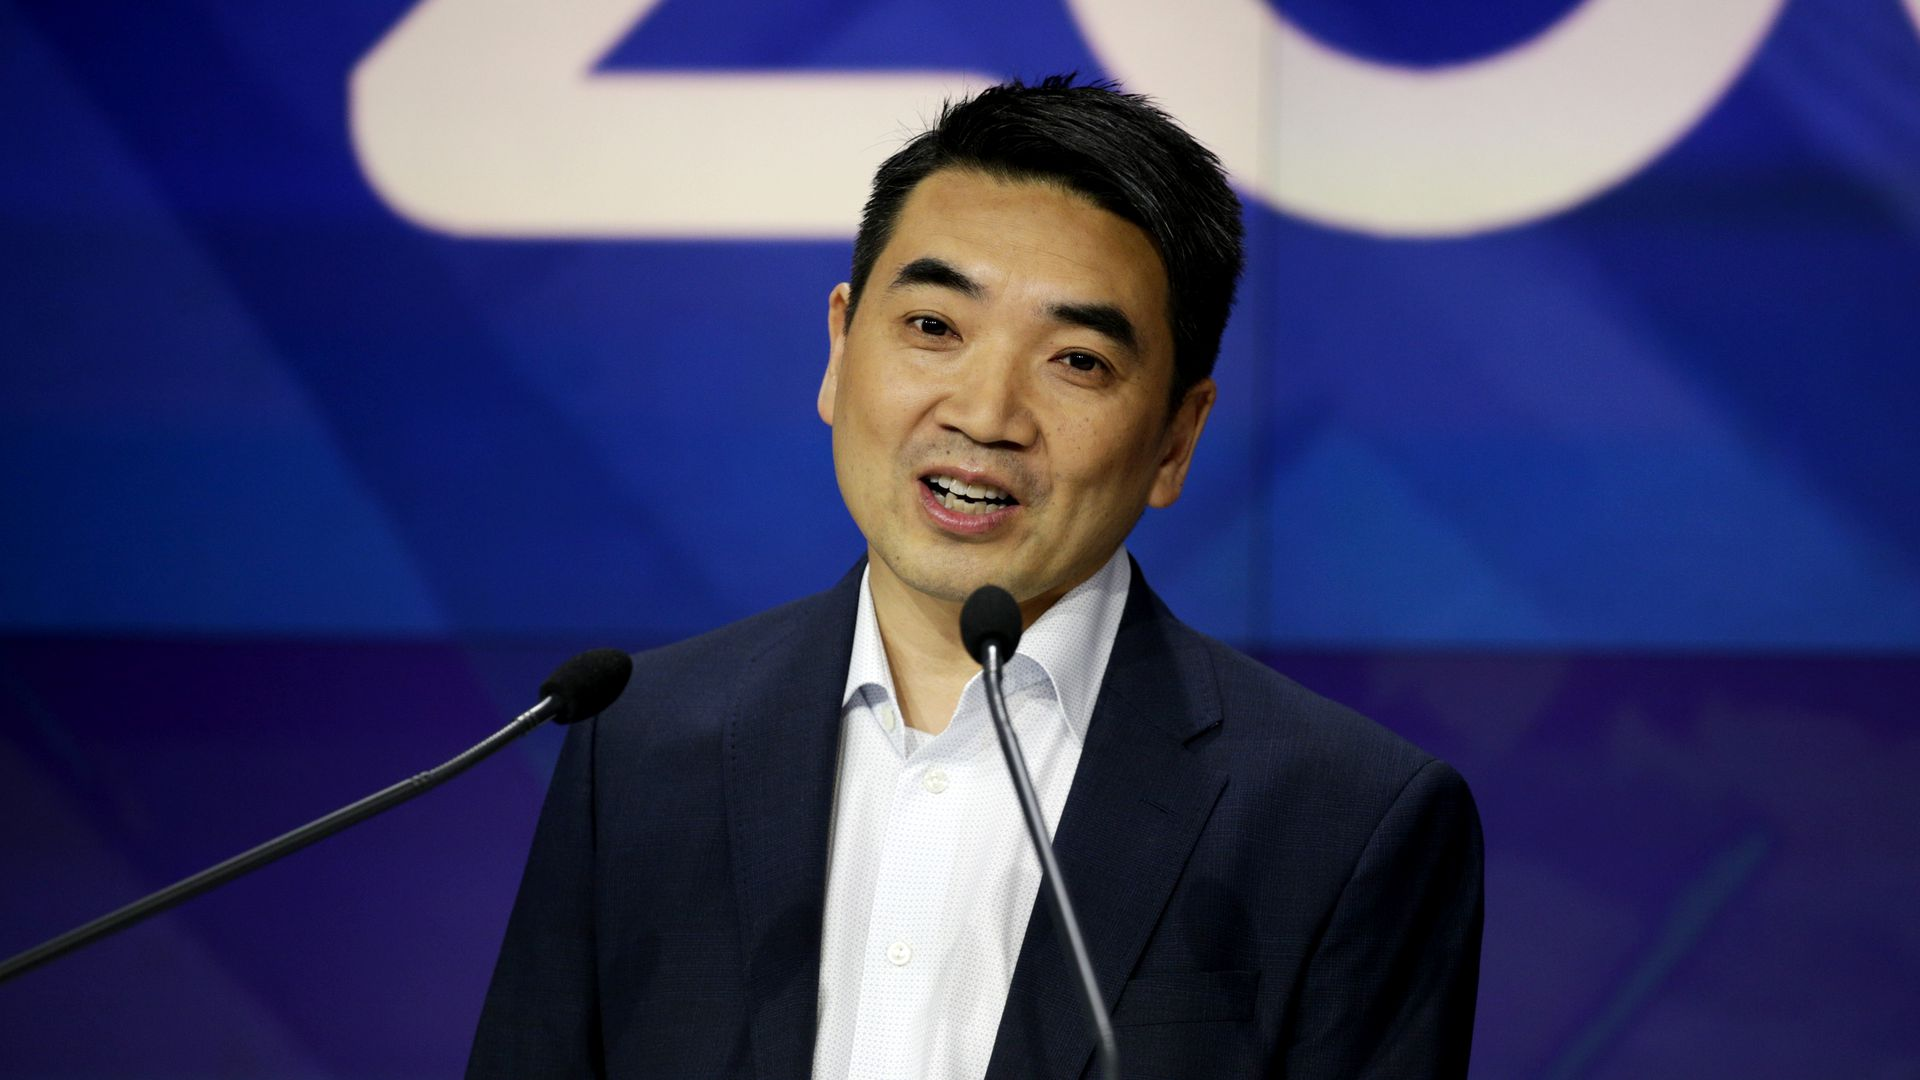 Zoom CEO Eric Yuan faces questions from lawmakers - Axios